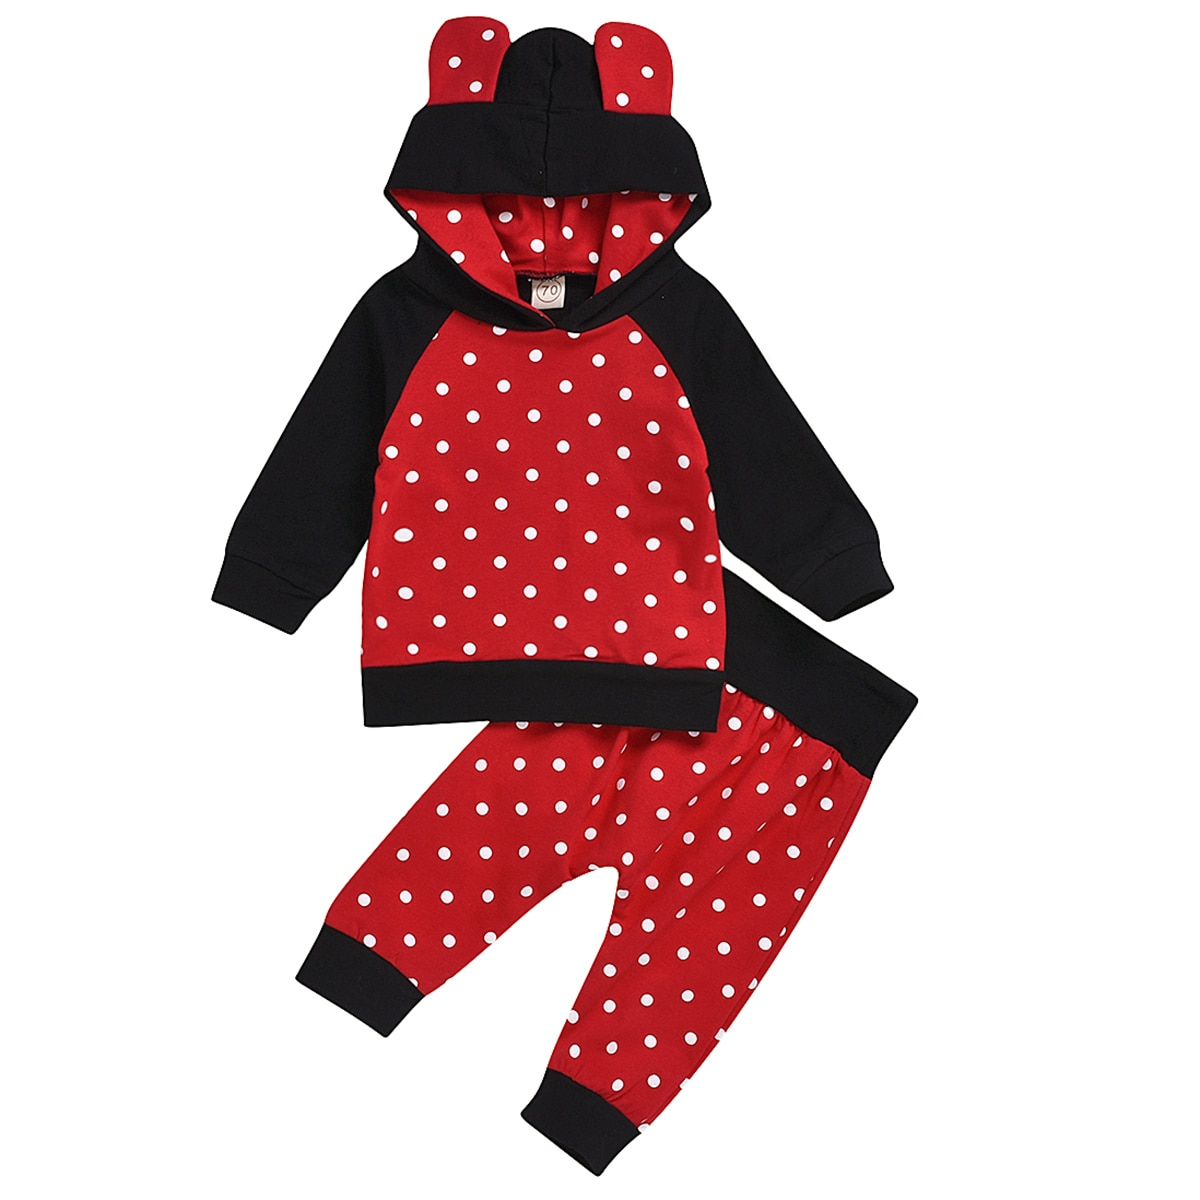 Fashion 2pcs/lot Newborn Baby Toddler Clothes Suit Polka Dotted Hoodie + Polka Dotted Pants baby clothes Casual Clothing Suit aluminum foil clothing fire fighting suit fireman outside suit high tempreture protective clothes radiation proof clothes